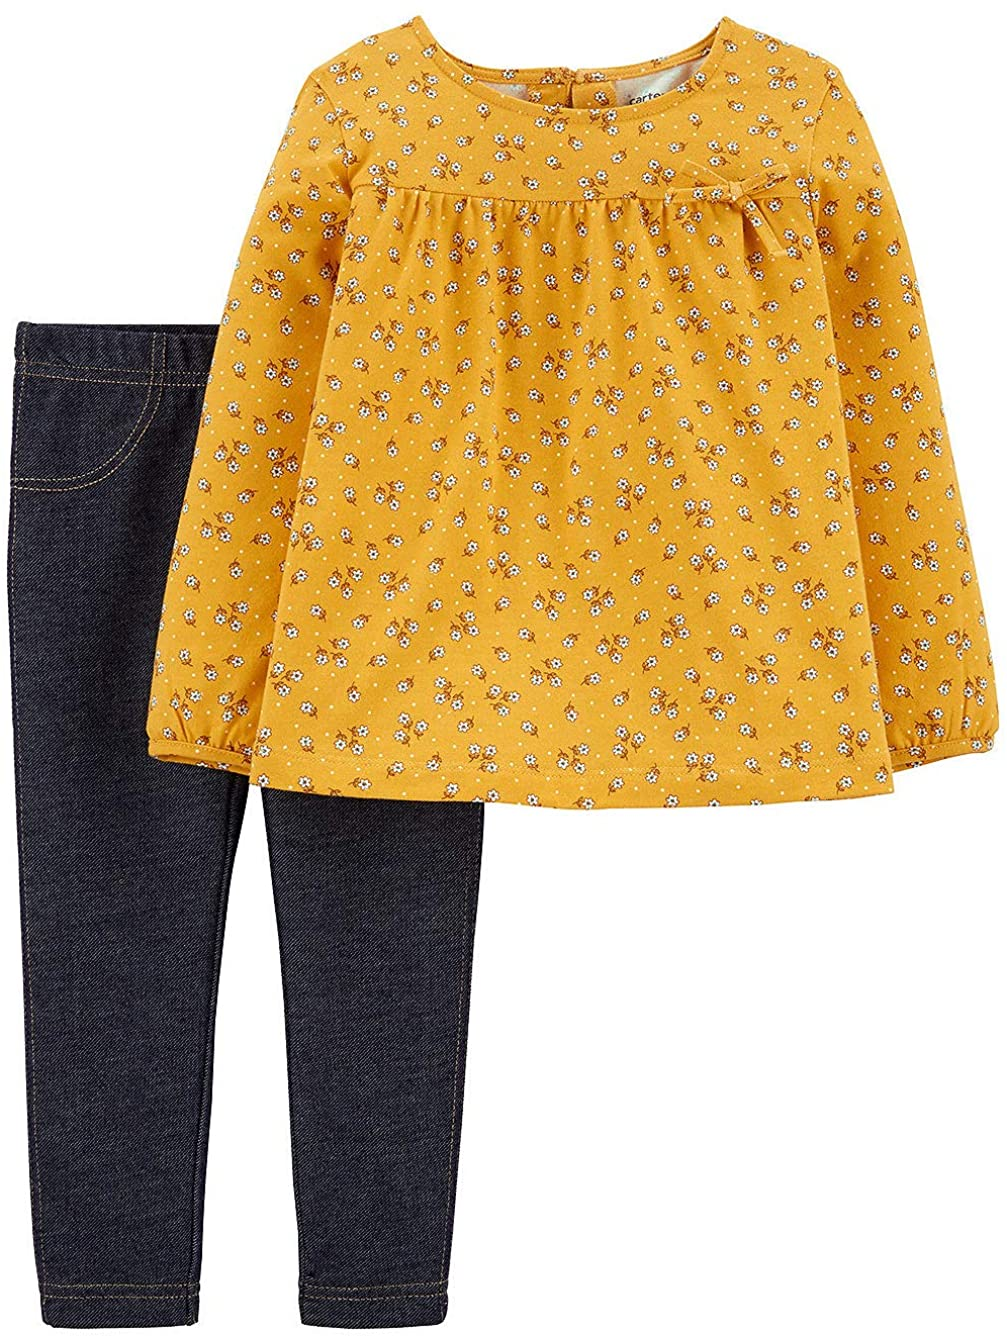 Carter's Girls' 2-Piece Long Sleeve Top and Legging Sets (5T, Yellow Floral Denim)